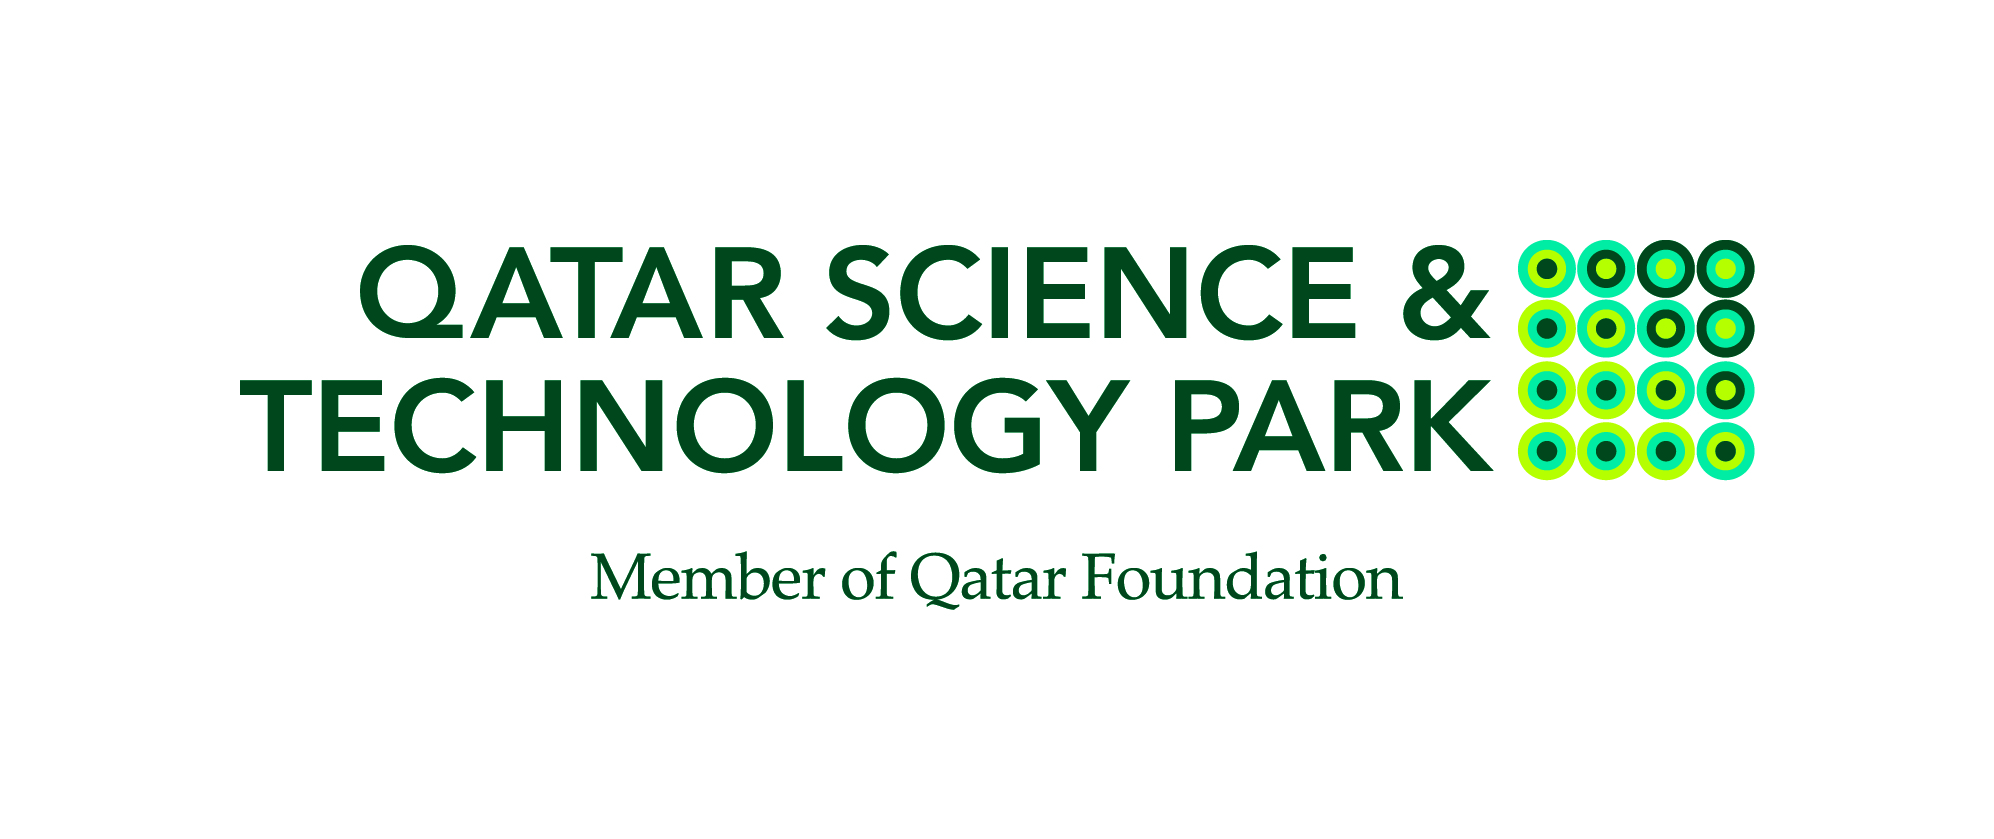 QATAR SCIENCE & TECHNOLOGY PARK AND 500 STARTUPS TO HOLD LANDMARK 'INVESTORS DAY'